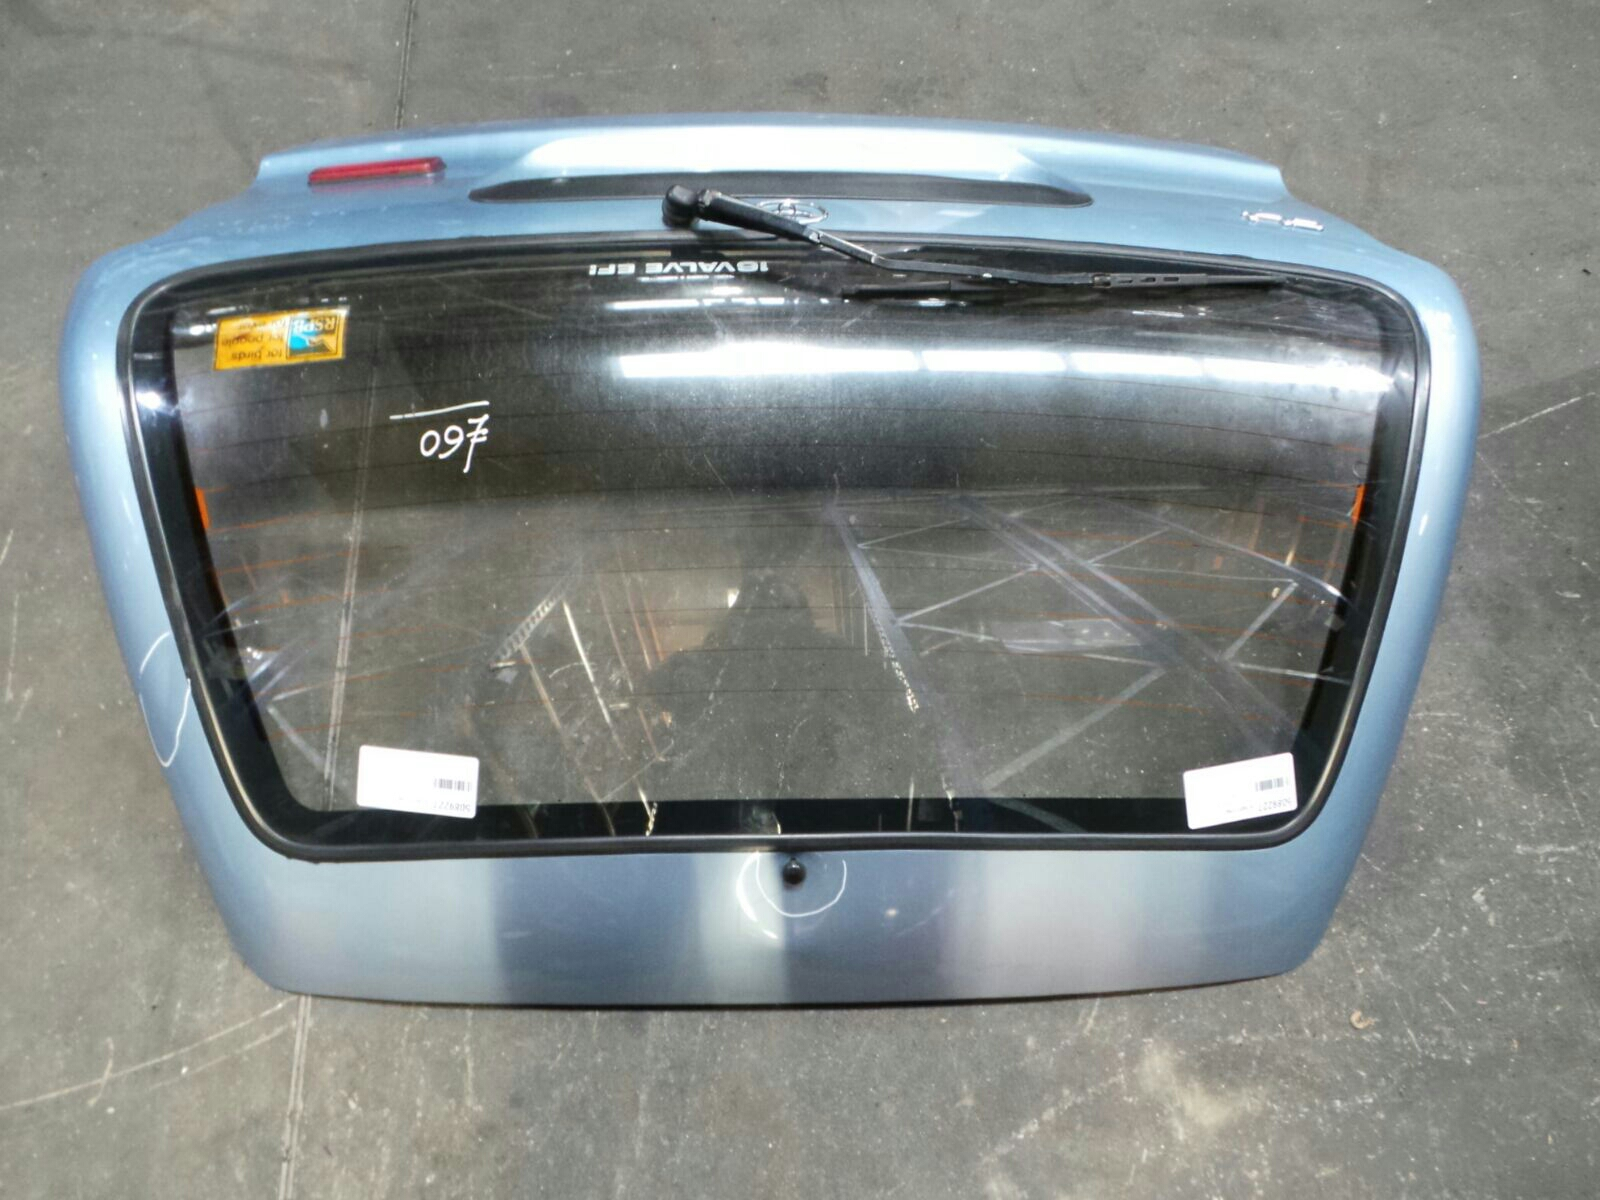 Toyota Corolla Repair Manual: Outer rear view mirror assy lh